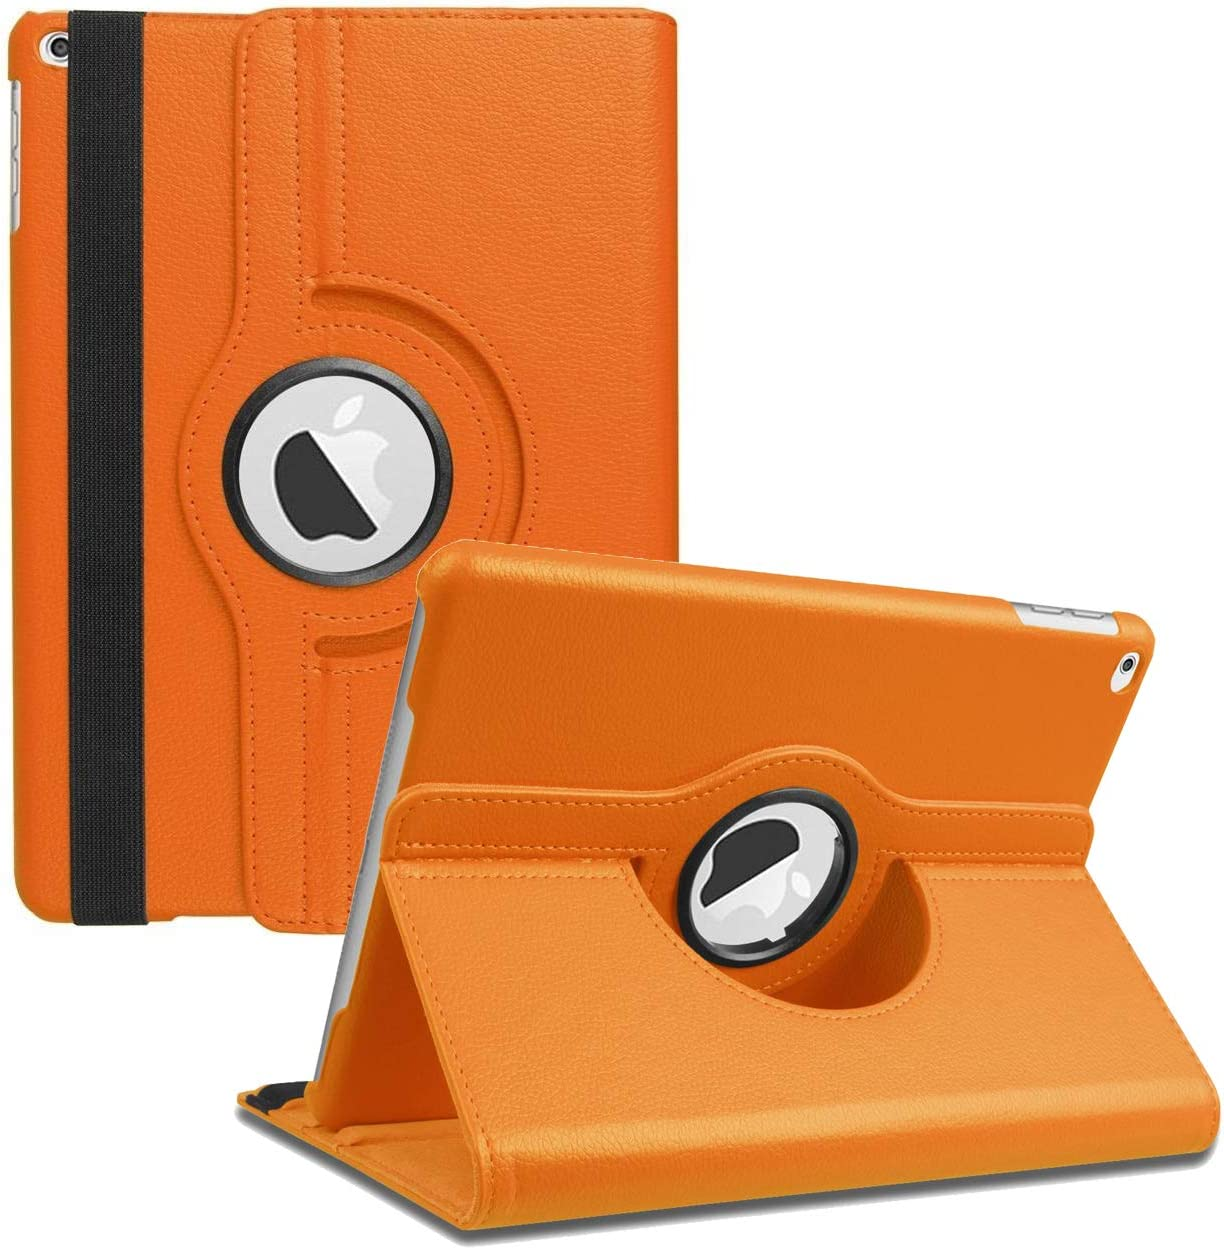 "New iPad 2017 9.7"" / iPad Air 2 Leather Case,360 Degree Rotating Stand Smart Cover with Auto Sleep Wake for Apple iPad Air or New iPad 9.7 Inch 2017 Tablet (Orange)"